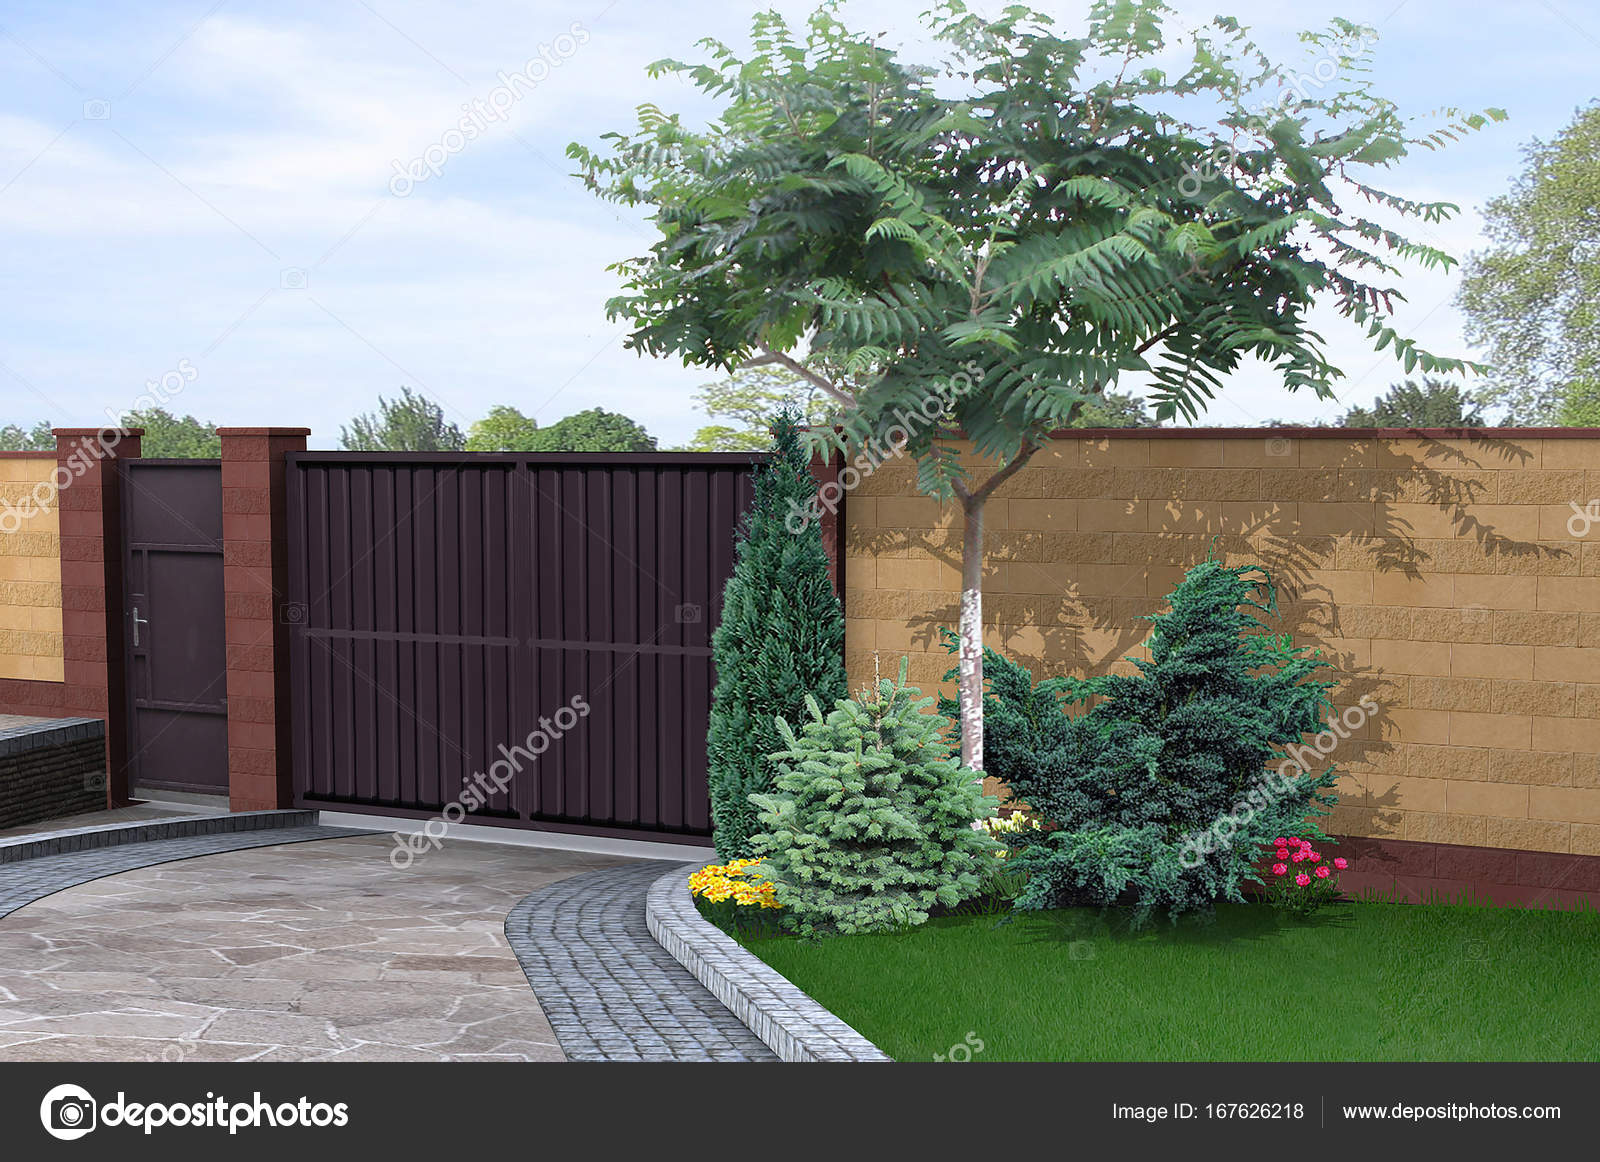 Driveway and walled garden design ideas 3d render stock photo driveway and walled garden design ideas 3d render stock photo workwithnaturefo